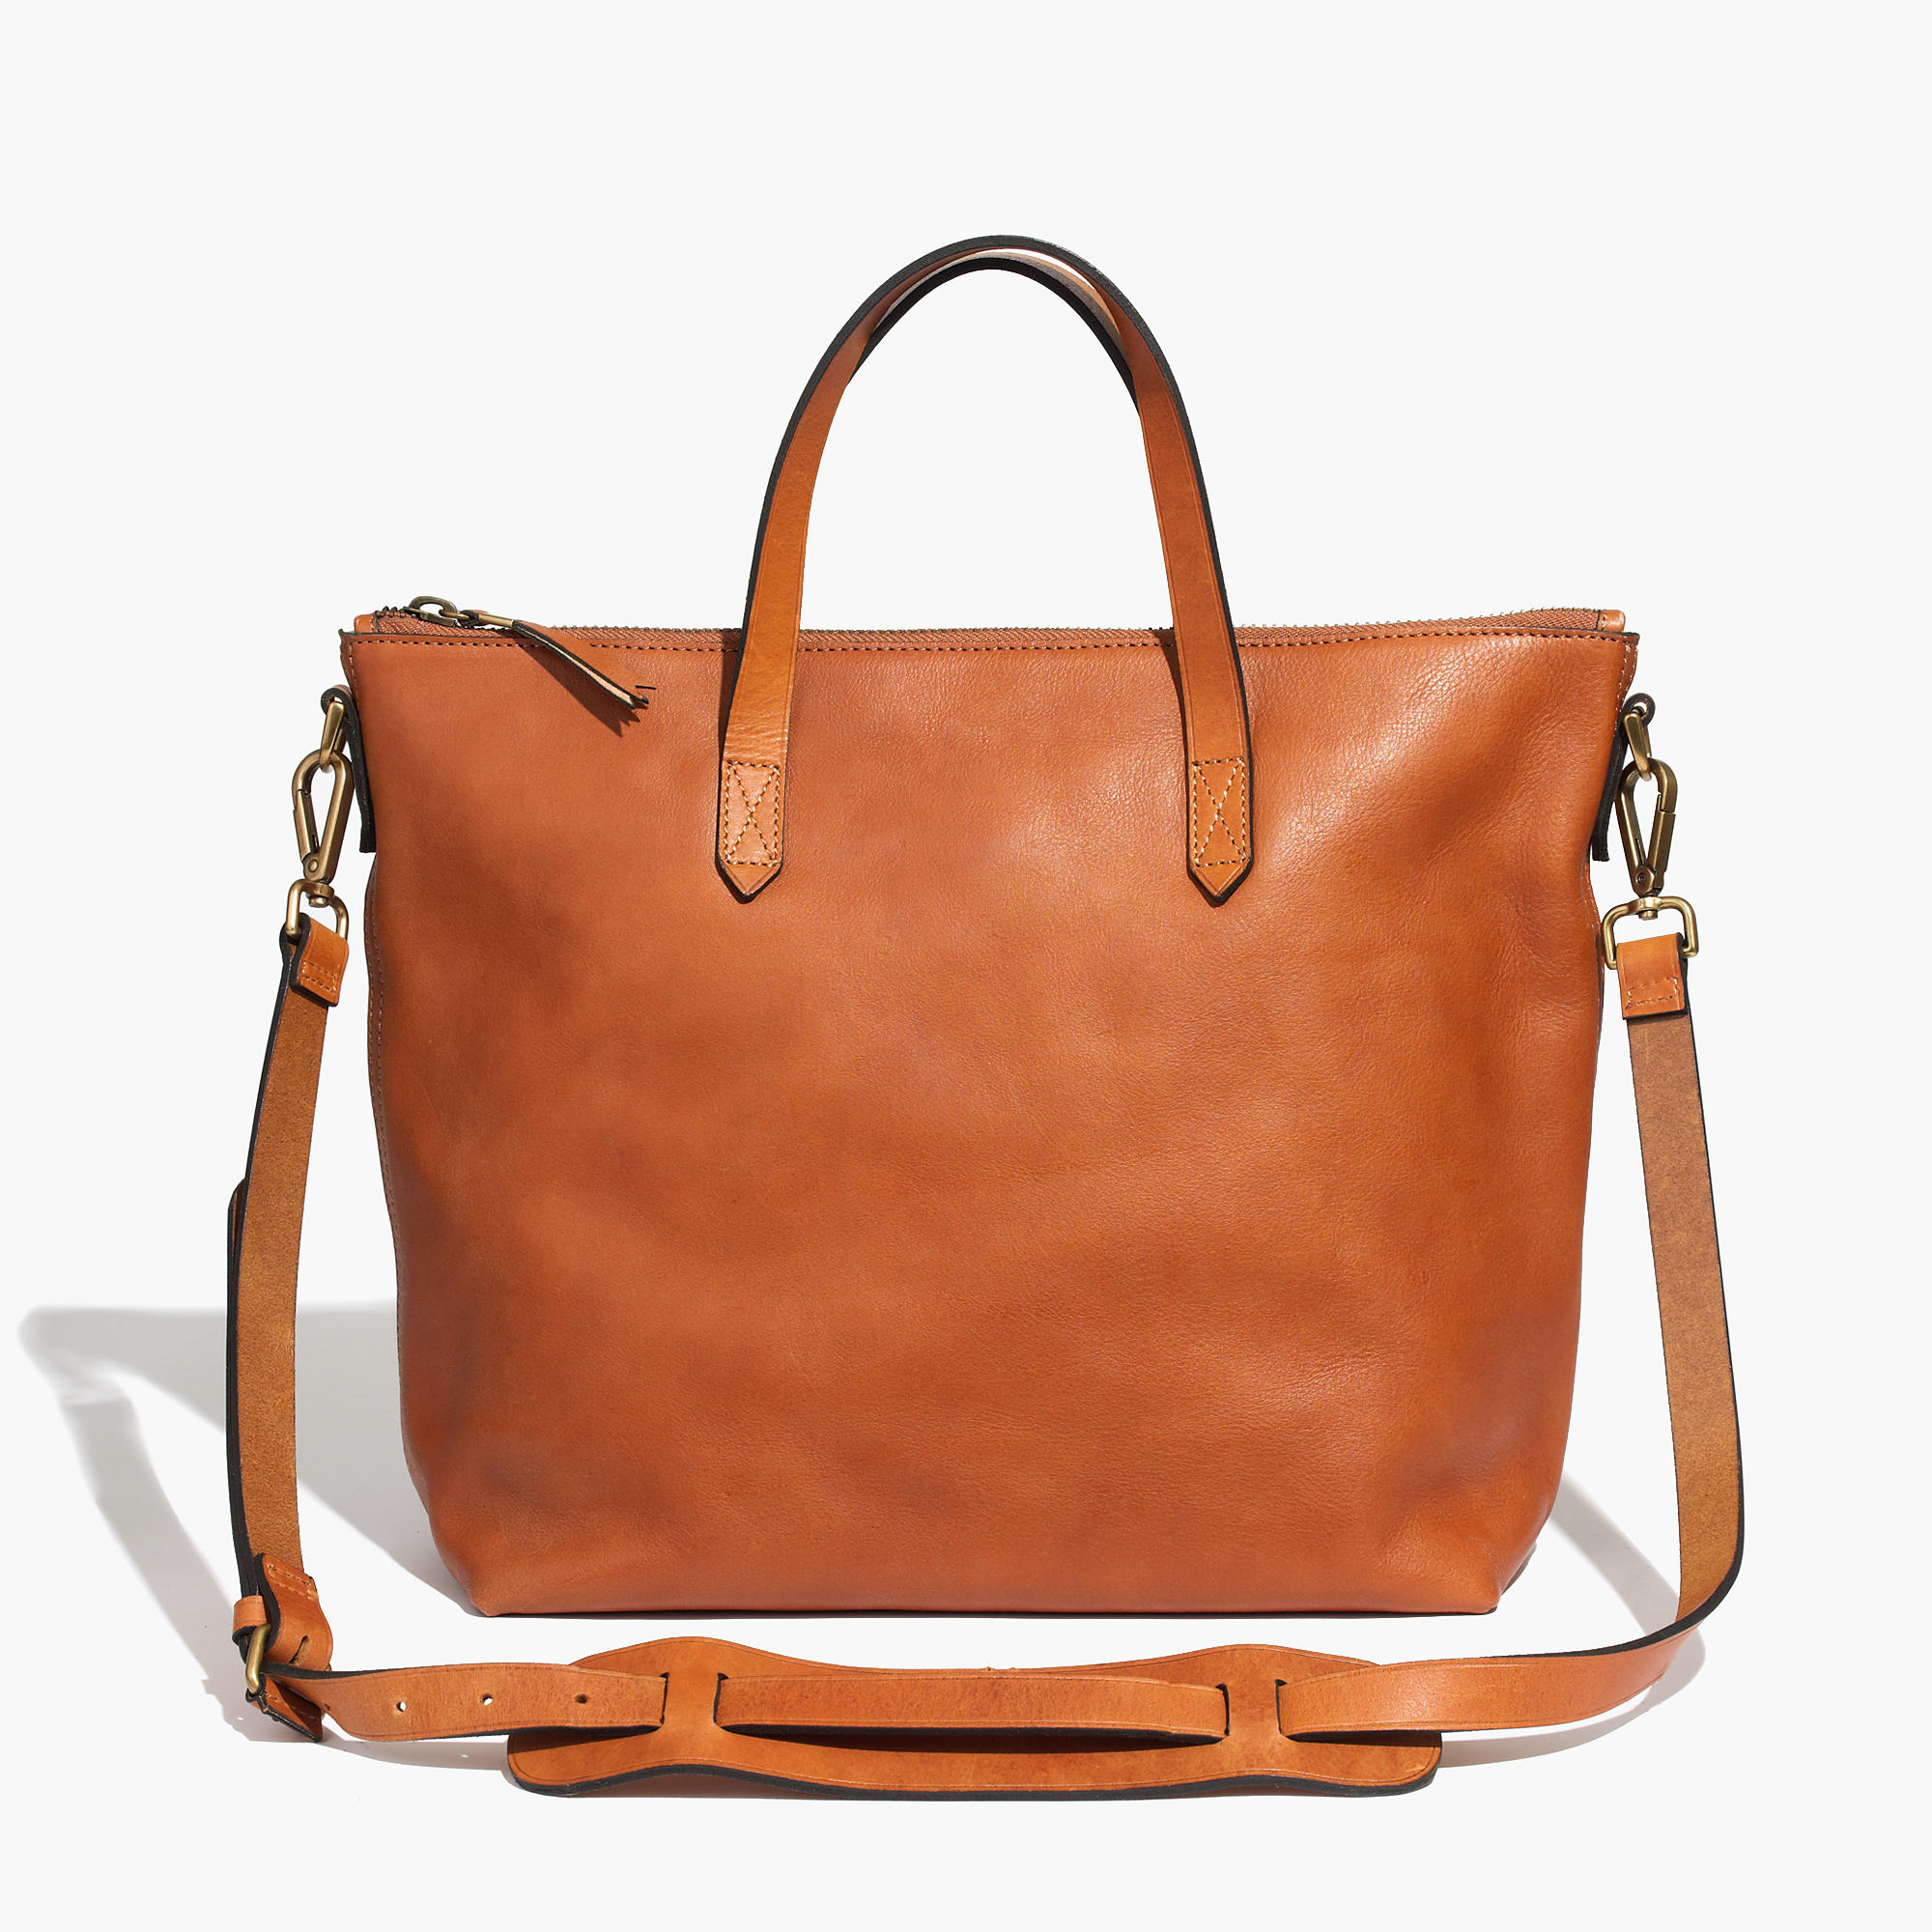 7 Laptop Bags That Can Carry Your Entire Freelance Office